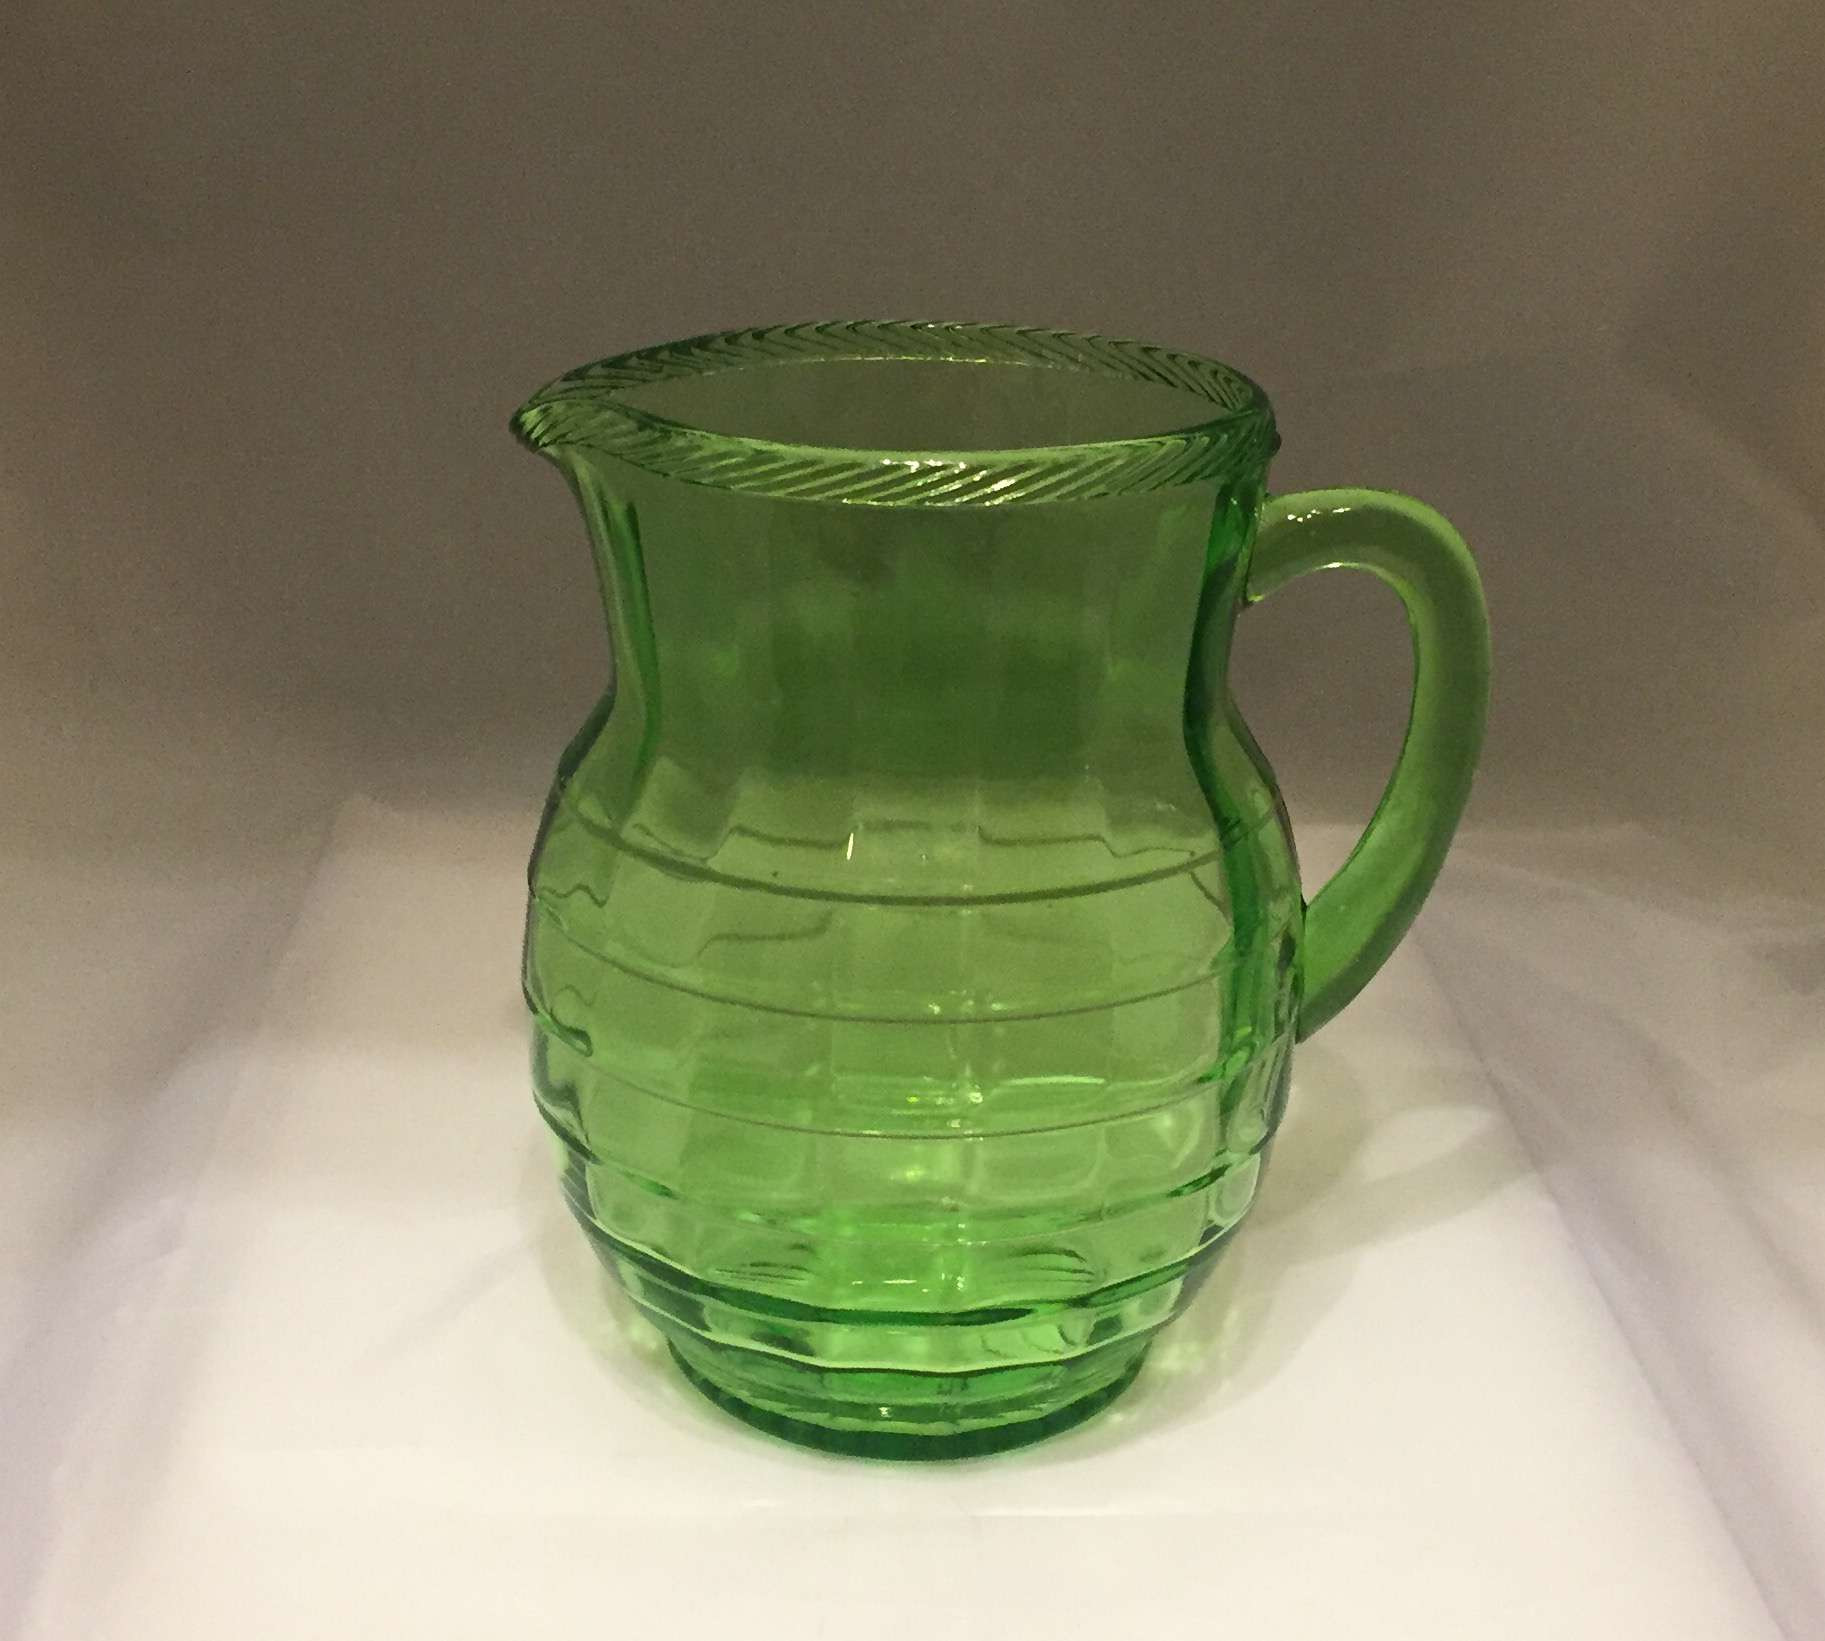 19 Lovable Clear Glass Footed Vase 2021 free download clear glass footed vase of depression glass price guide and pattern identification for blockpitcher 5786c8e35f9b5831b54ecdb1